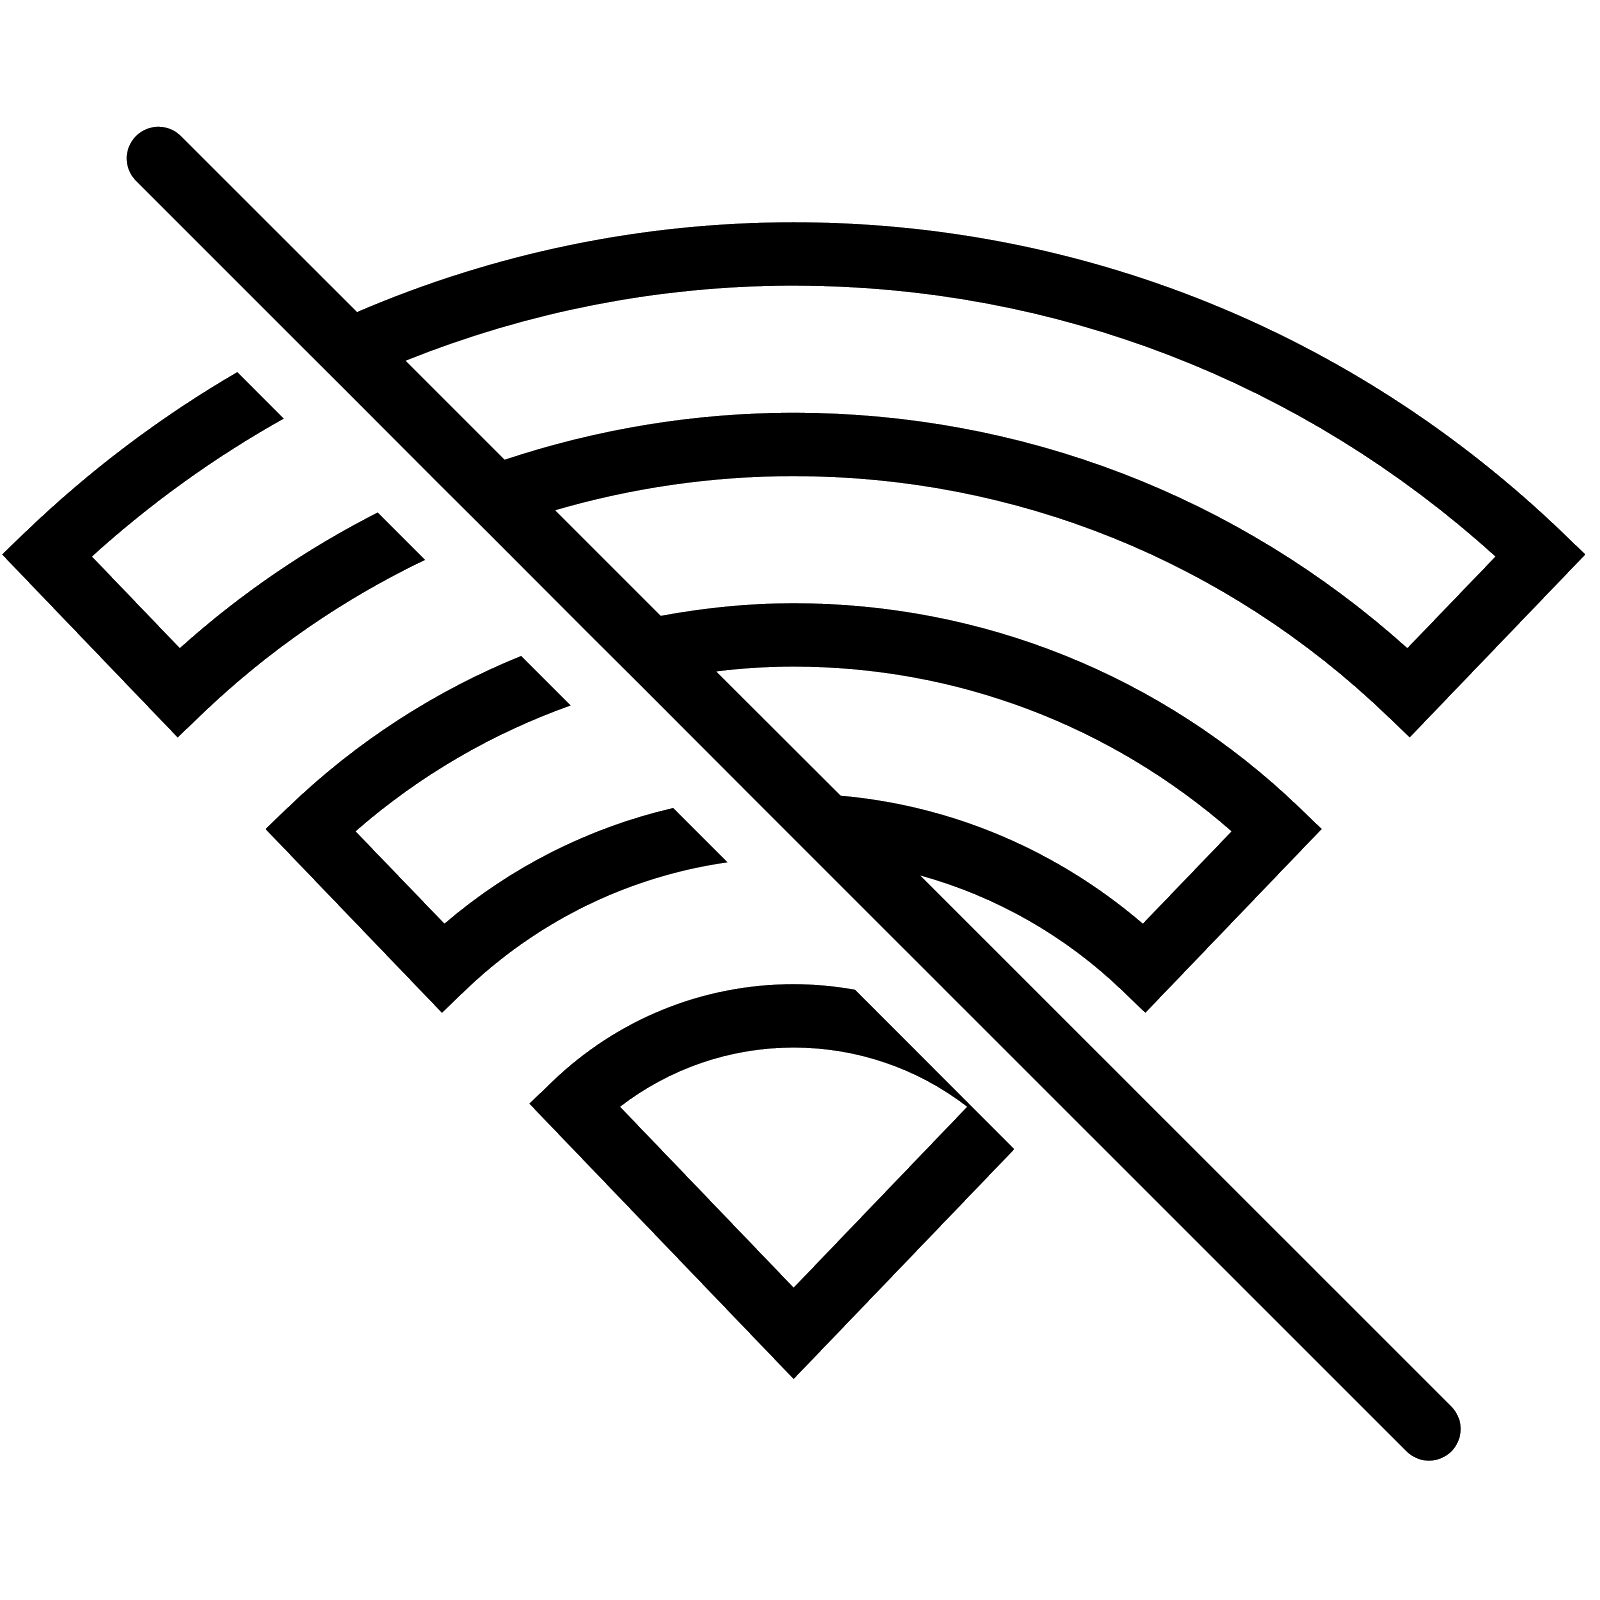 Wifi PNG Black And White - 162400